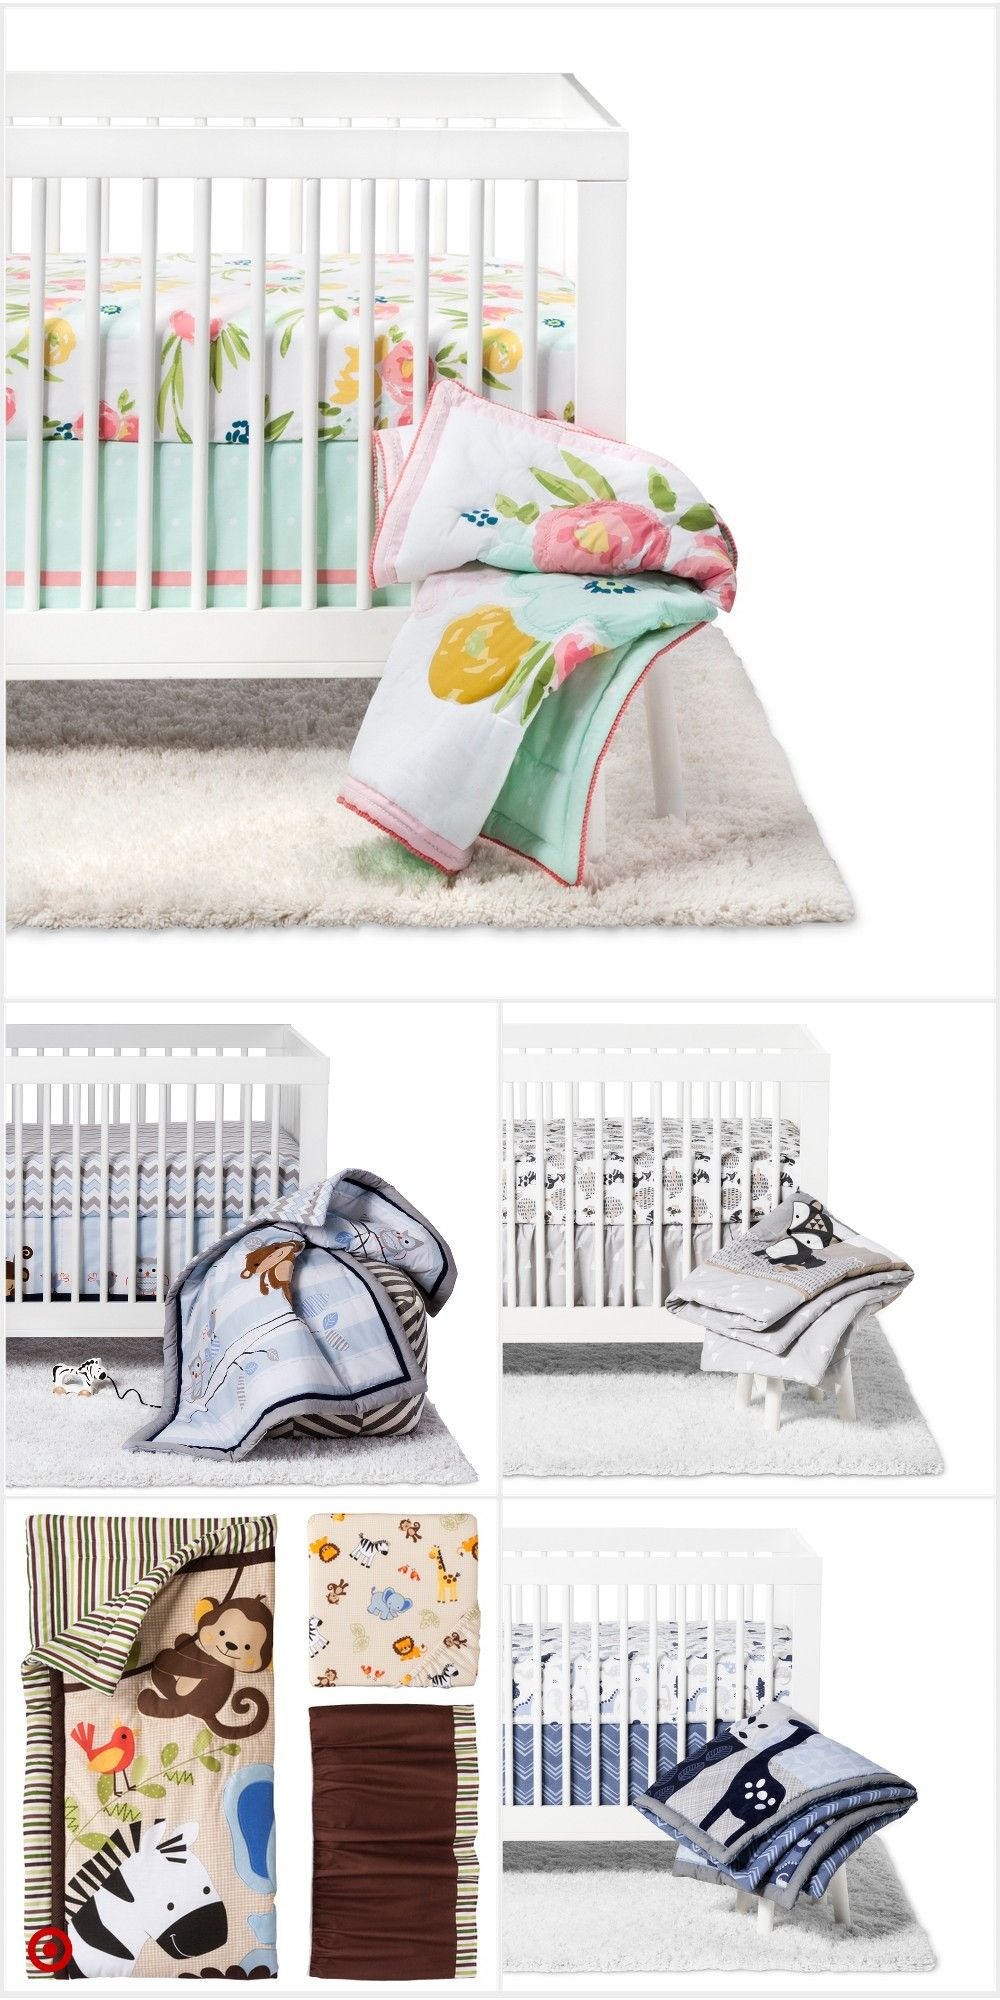 shop target for crib bedding set you will love at great